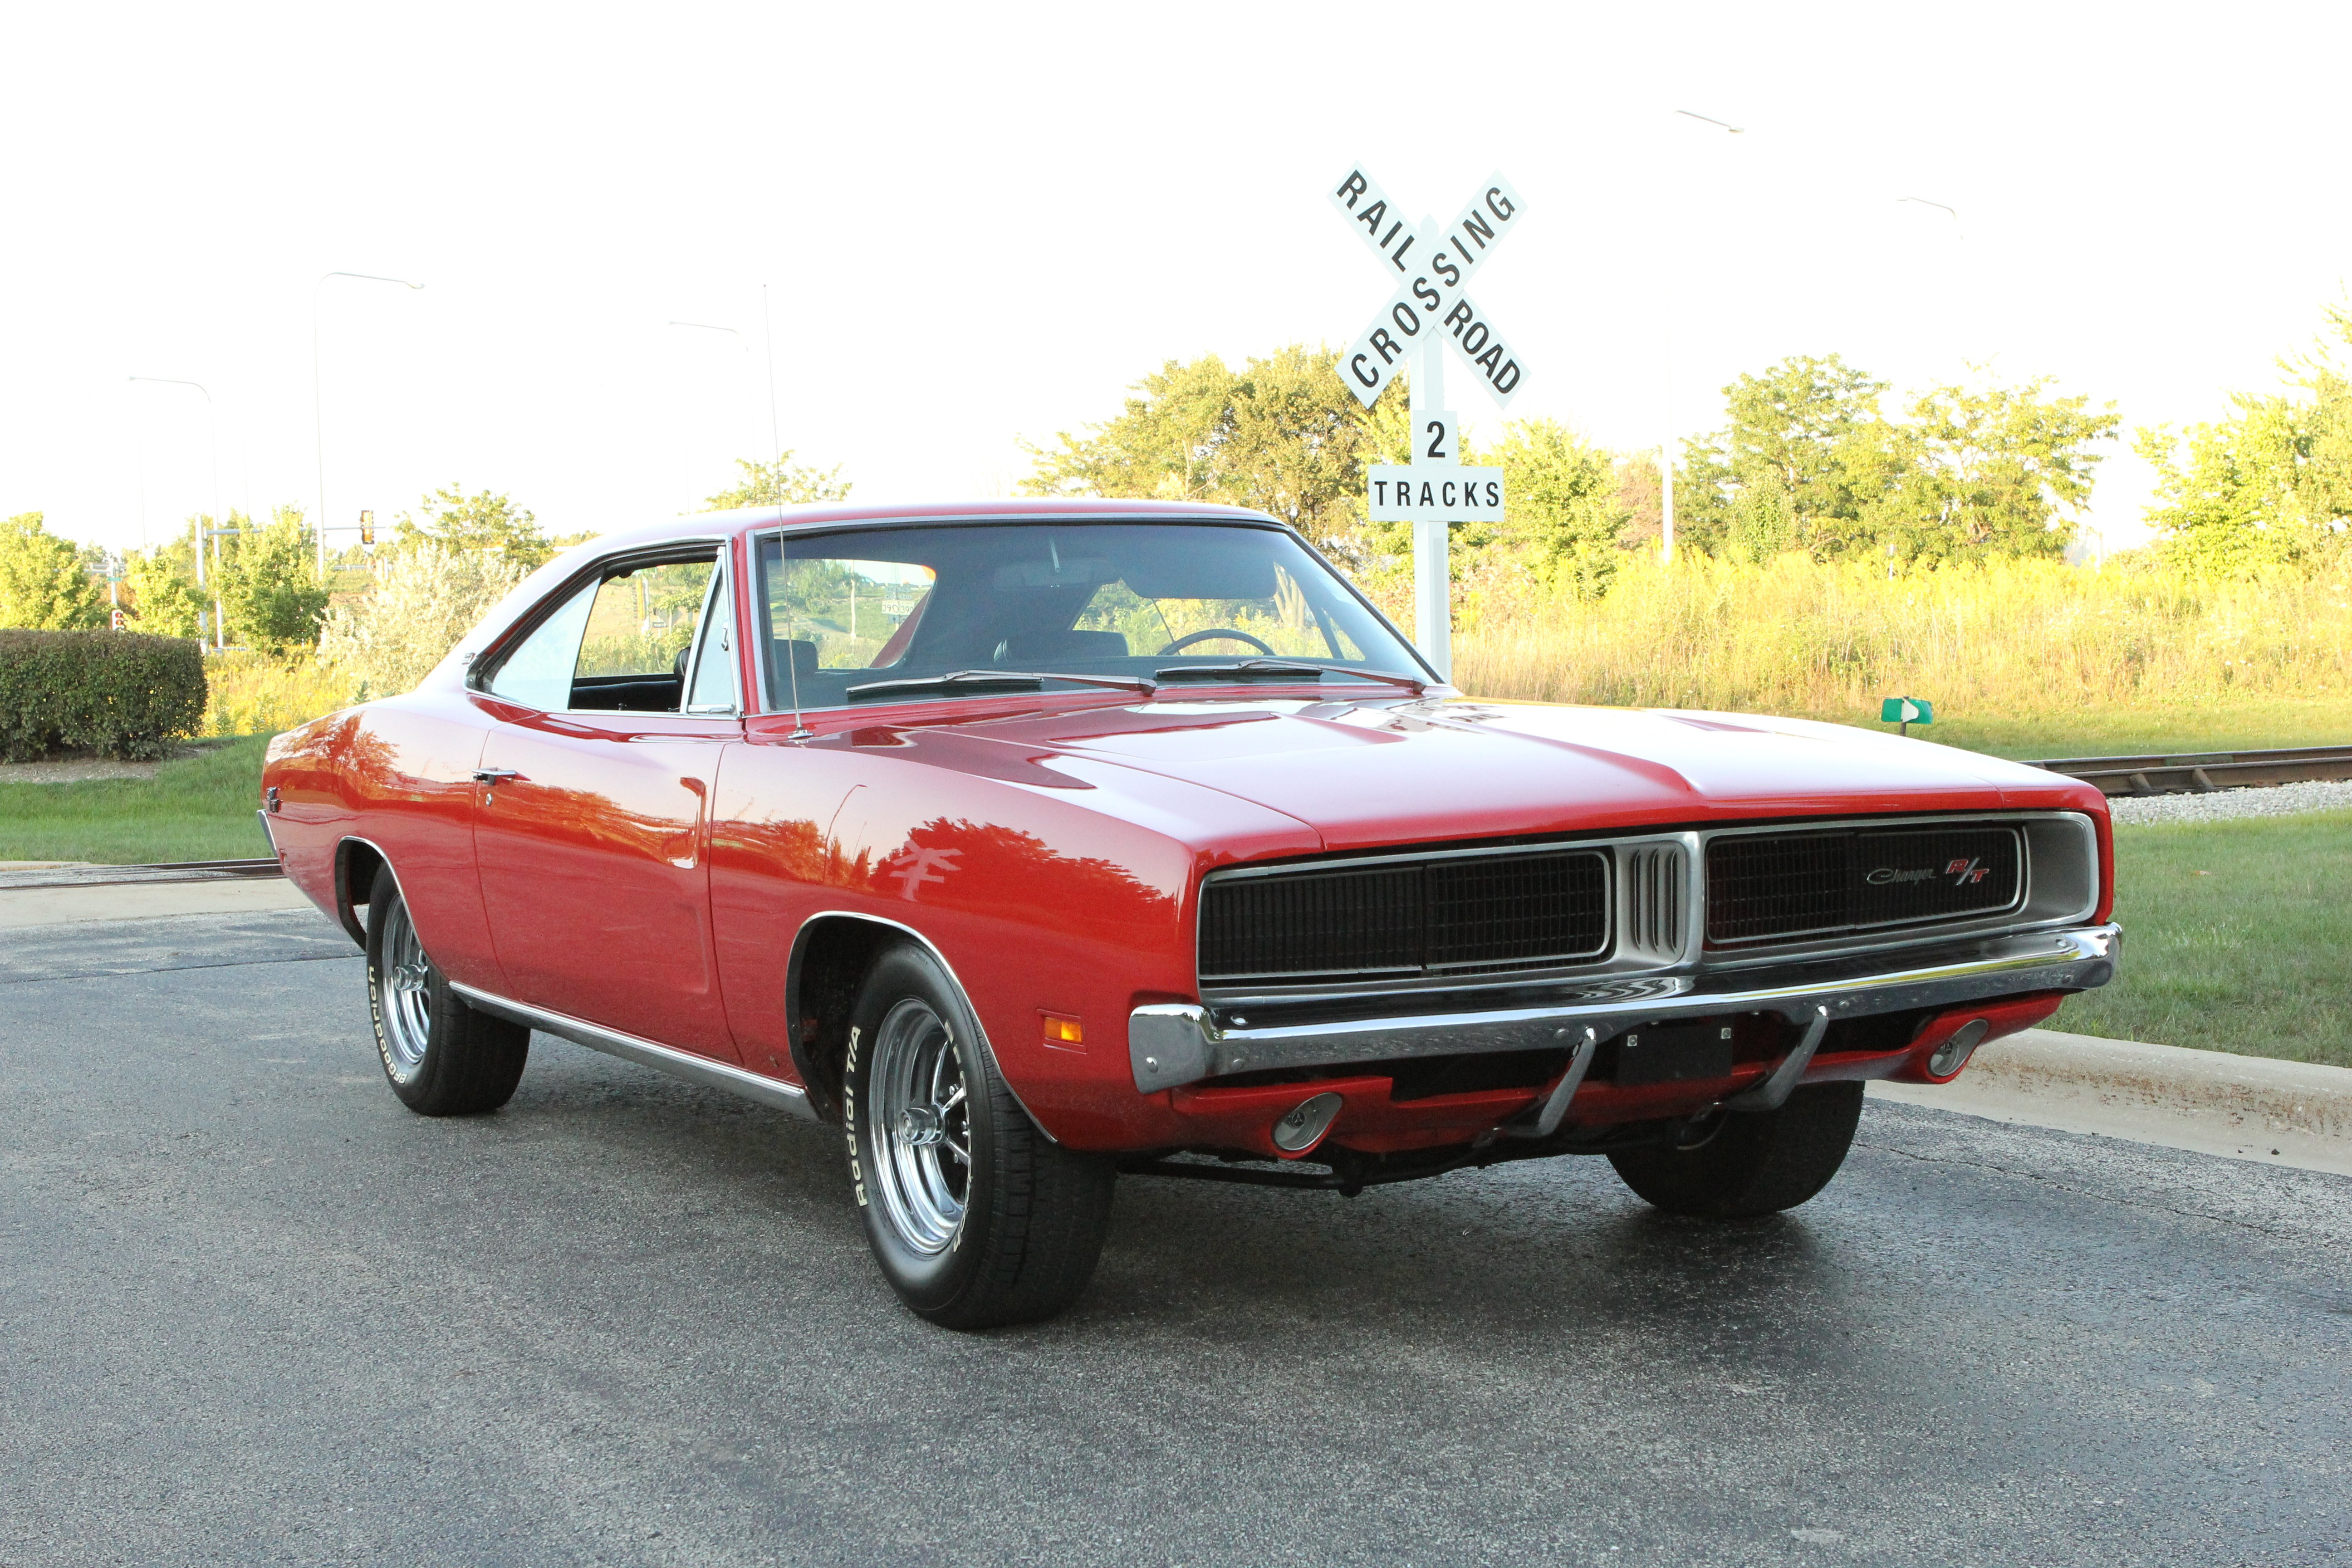 1969 Dodge Charger RT Muscle Classic USA d 5184x345604 wallpaper